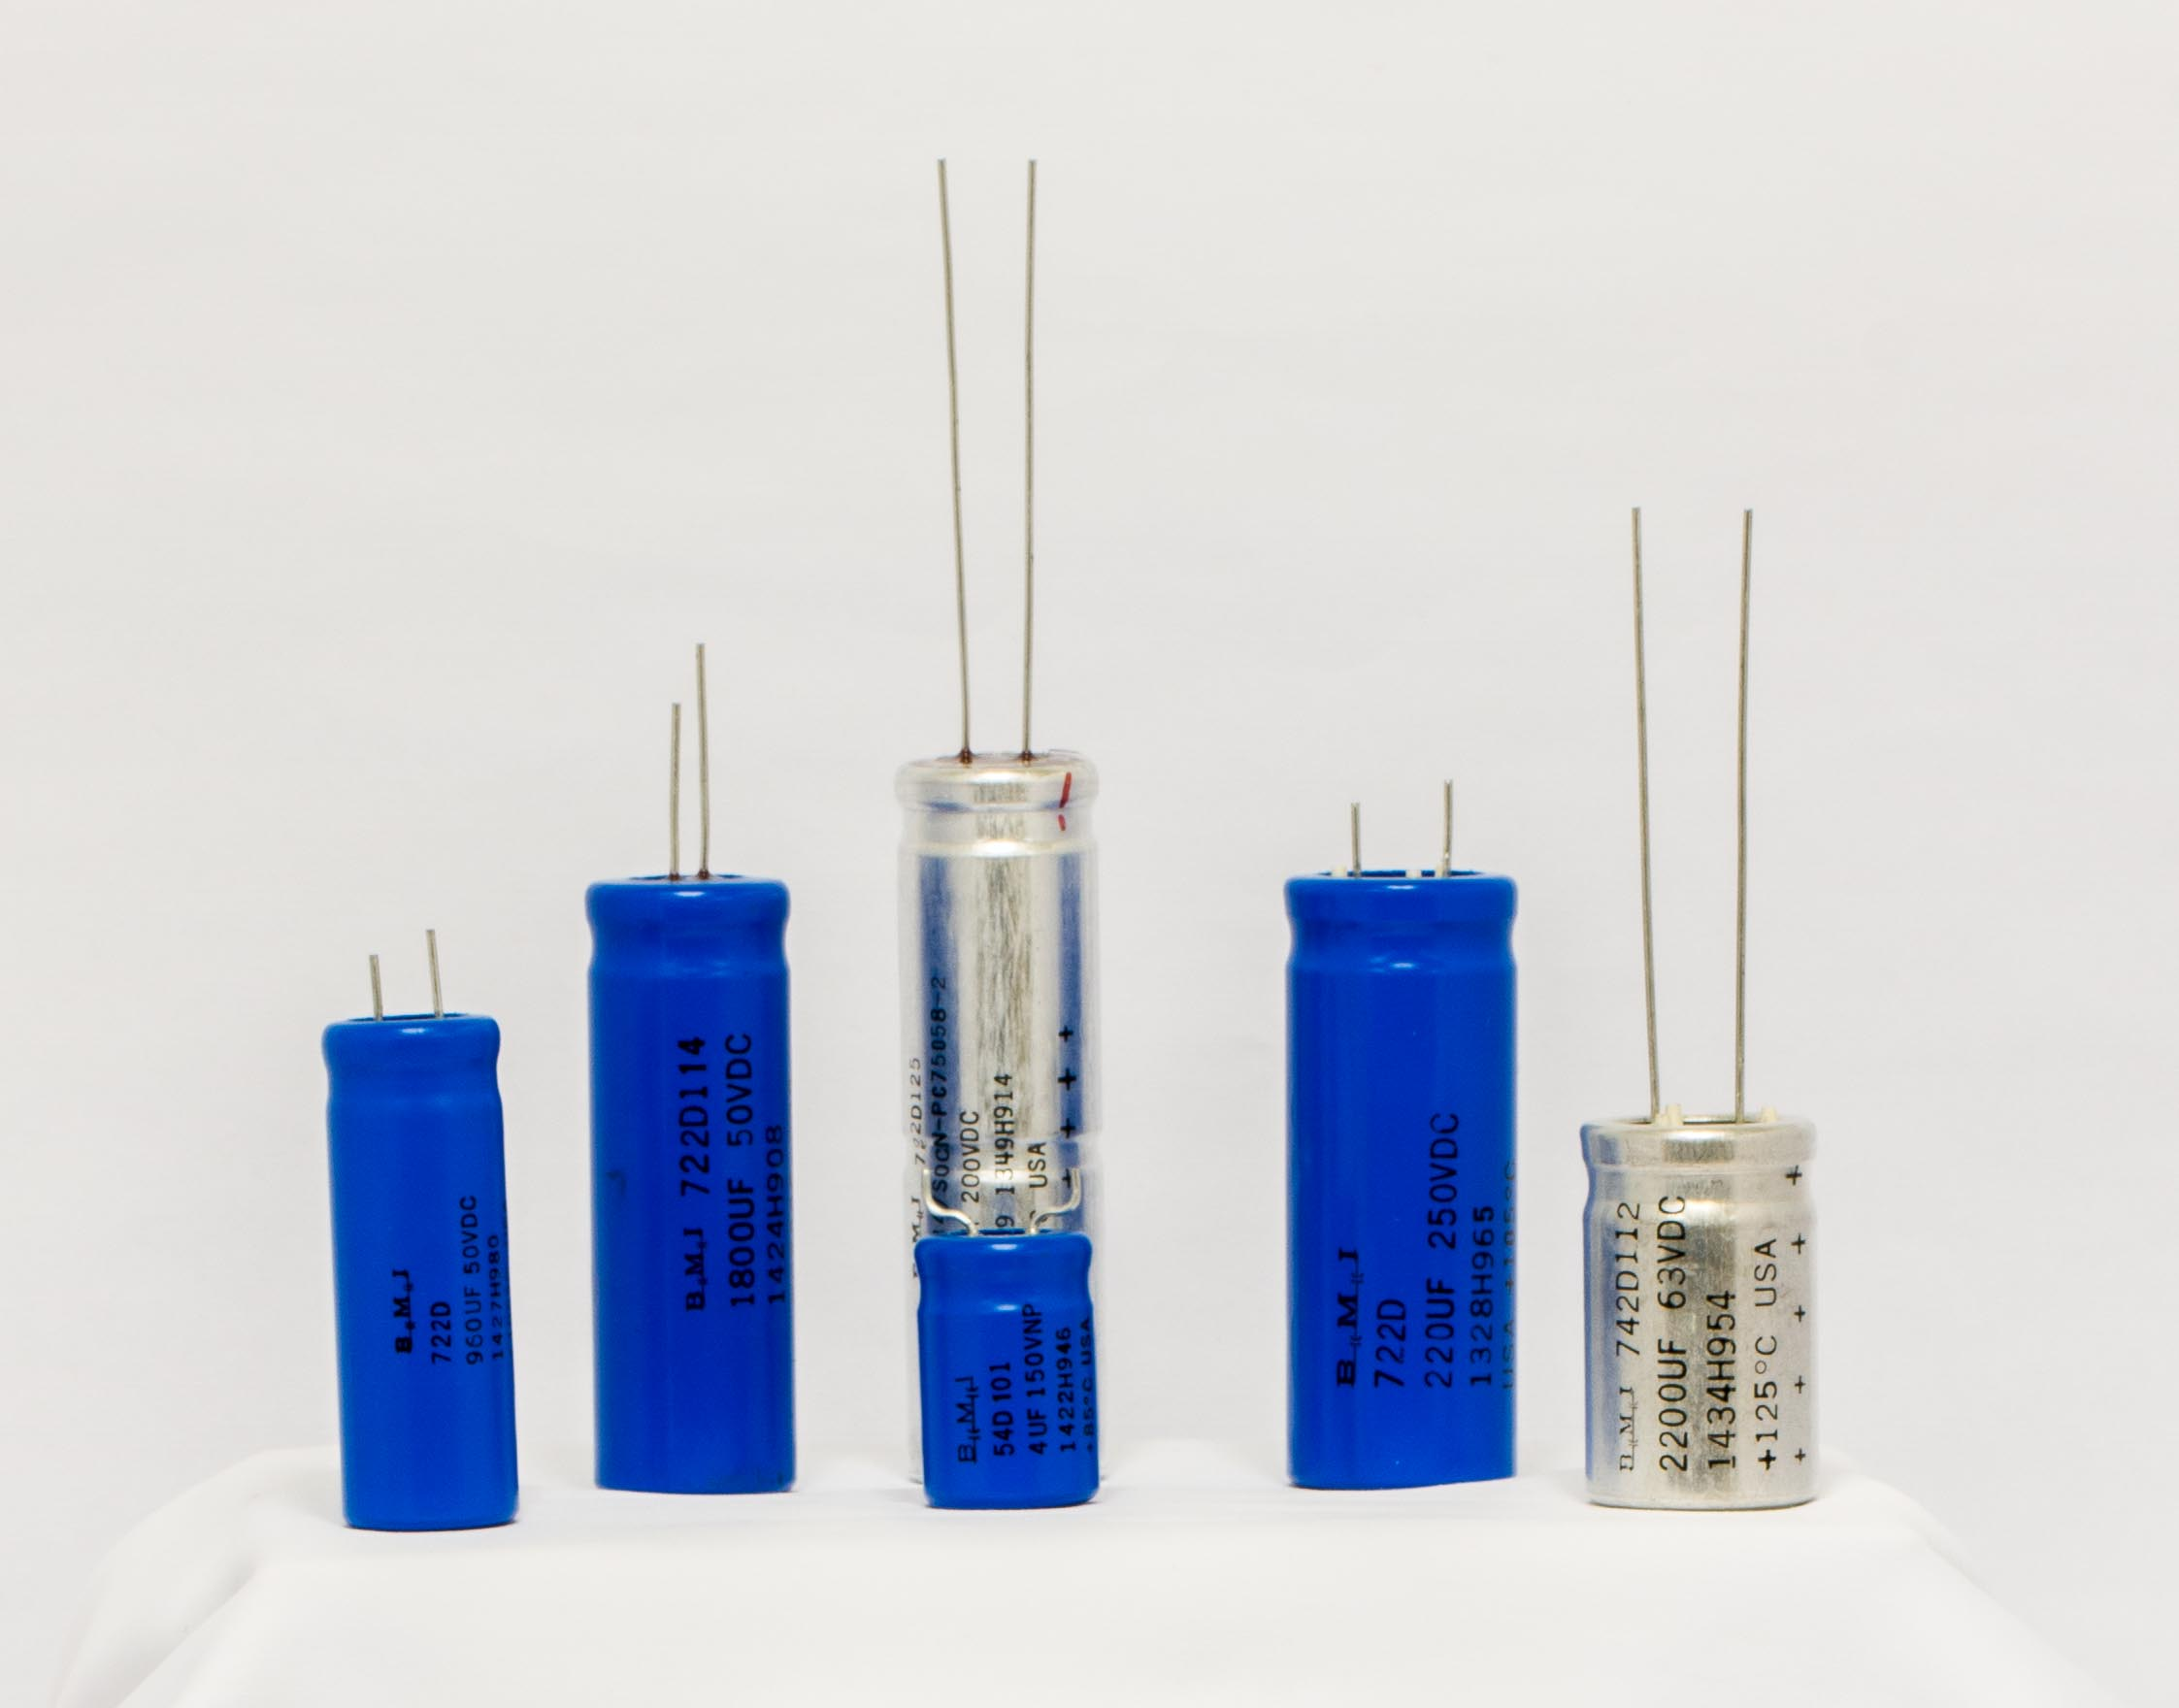 Tubular Radial Capacitors